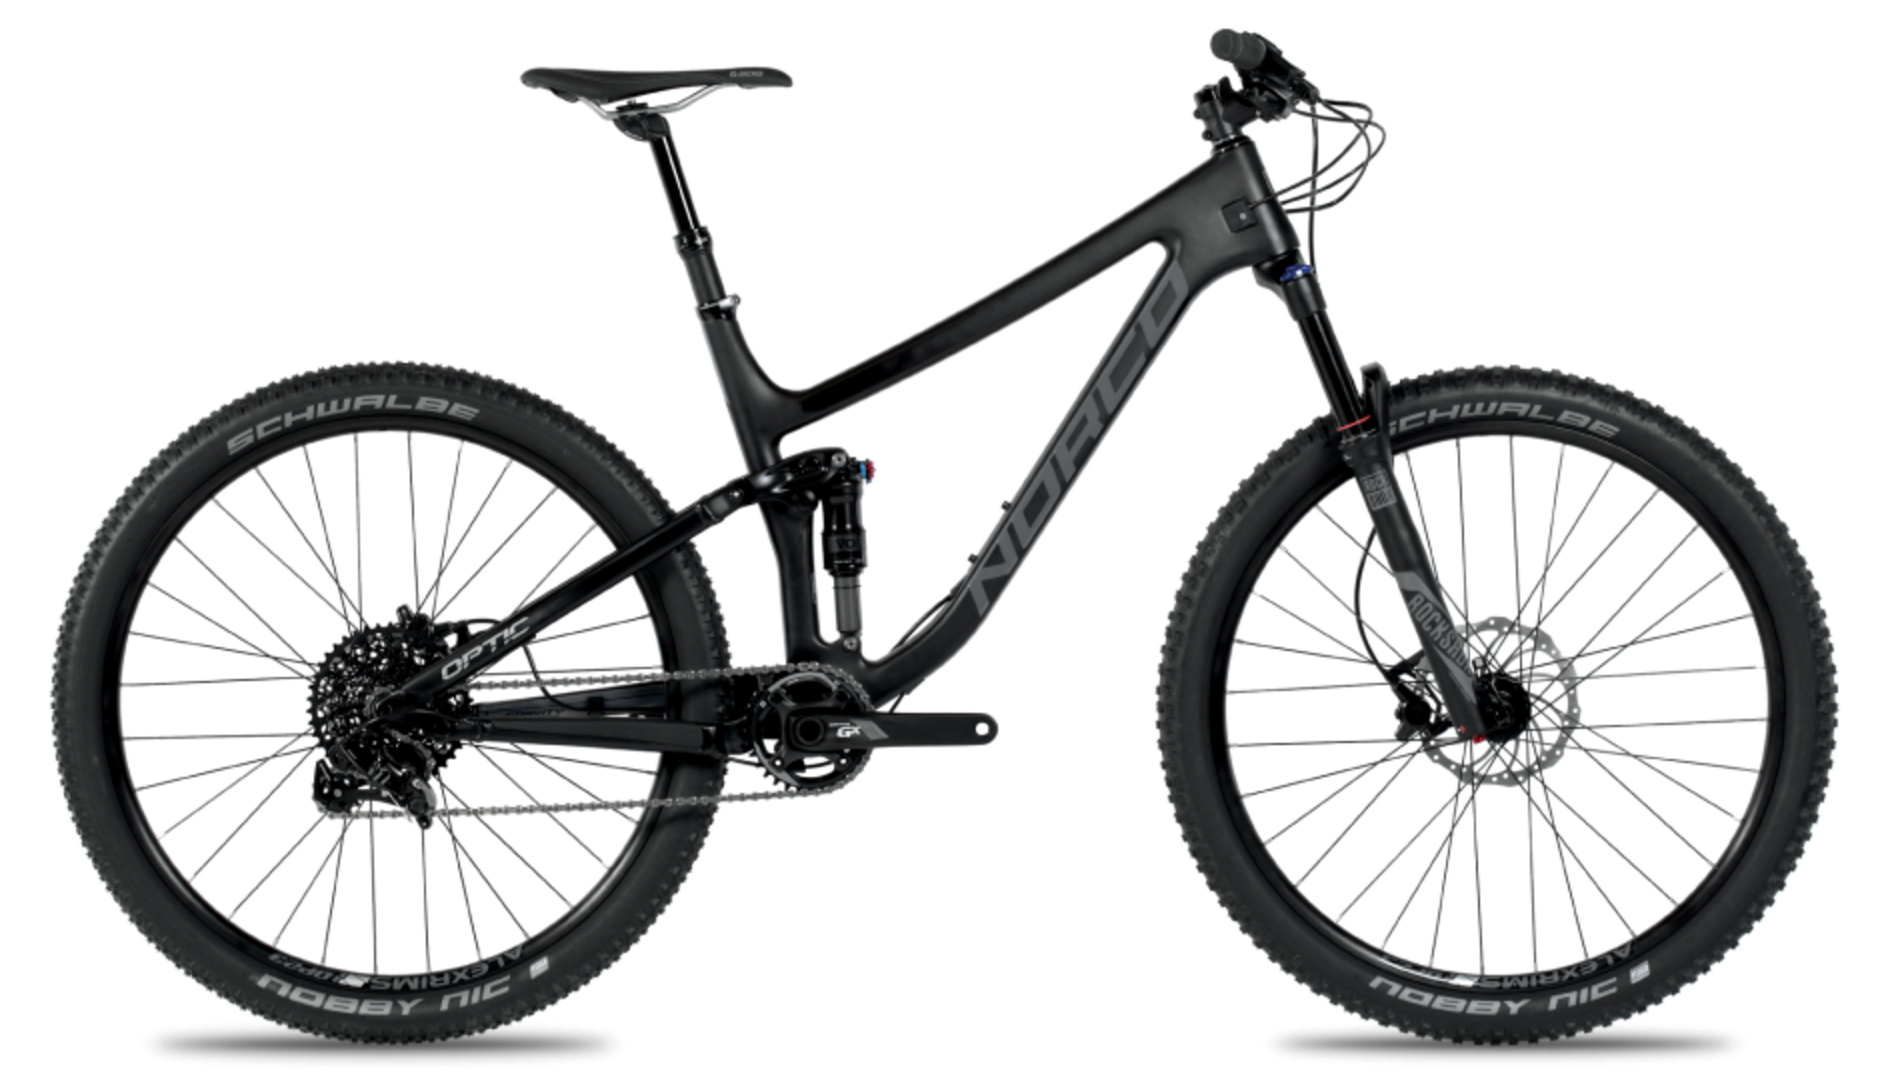 They Re All Somewhere Between Cross Country And Trail Bikes Sporting Moderate Travel The 29er Is 110 120